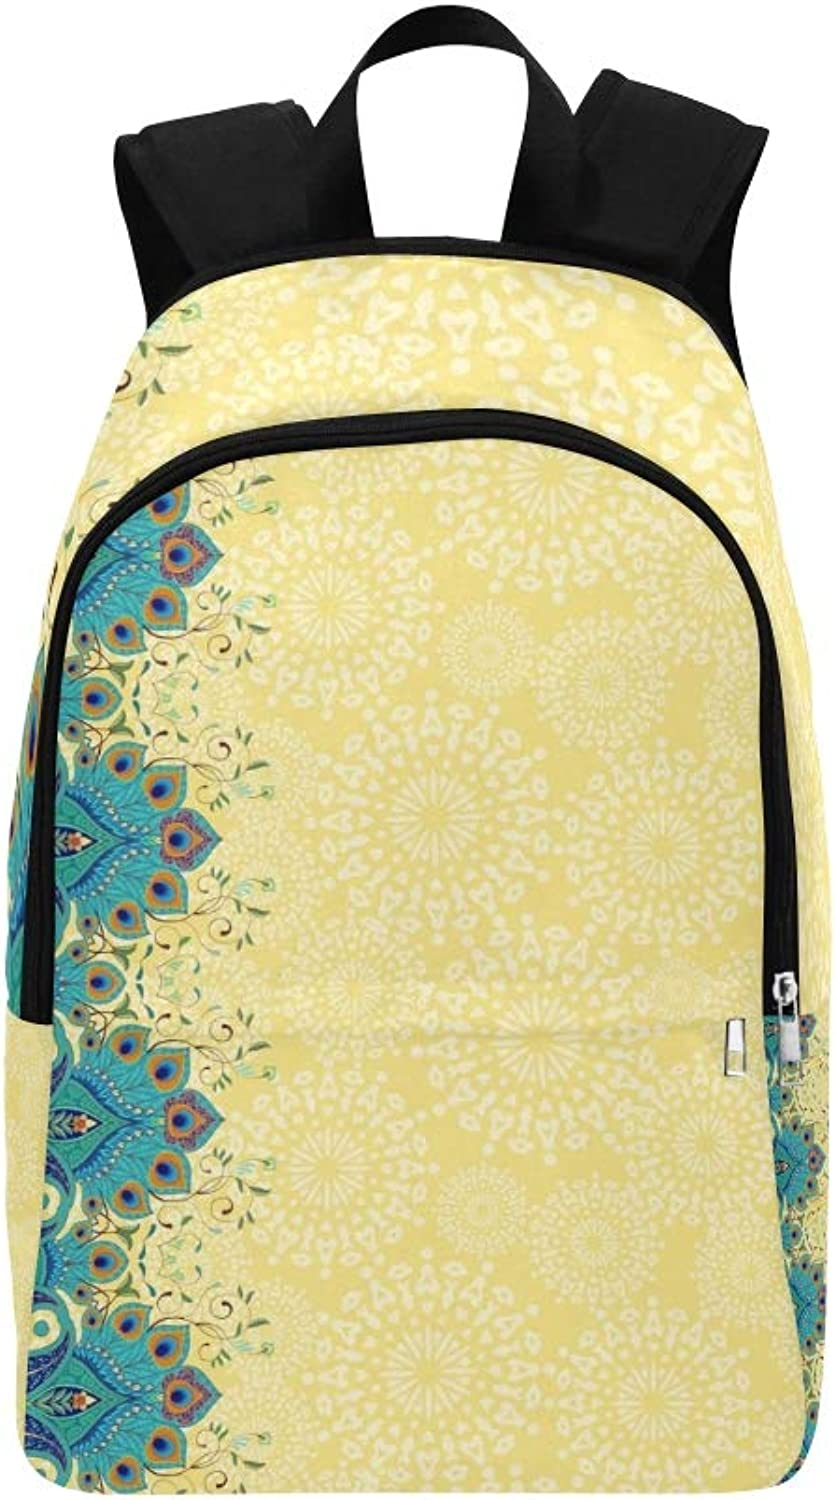 Card Floral Oriental Border Ornament Peacock Casual Daypack Travel Bag College School Backpack for Mens and Women